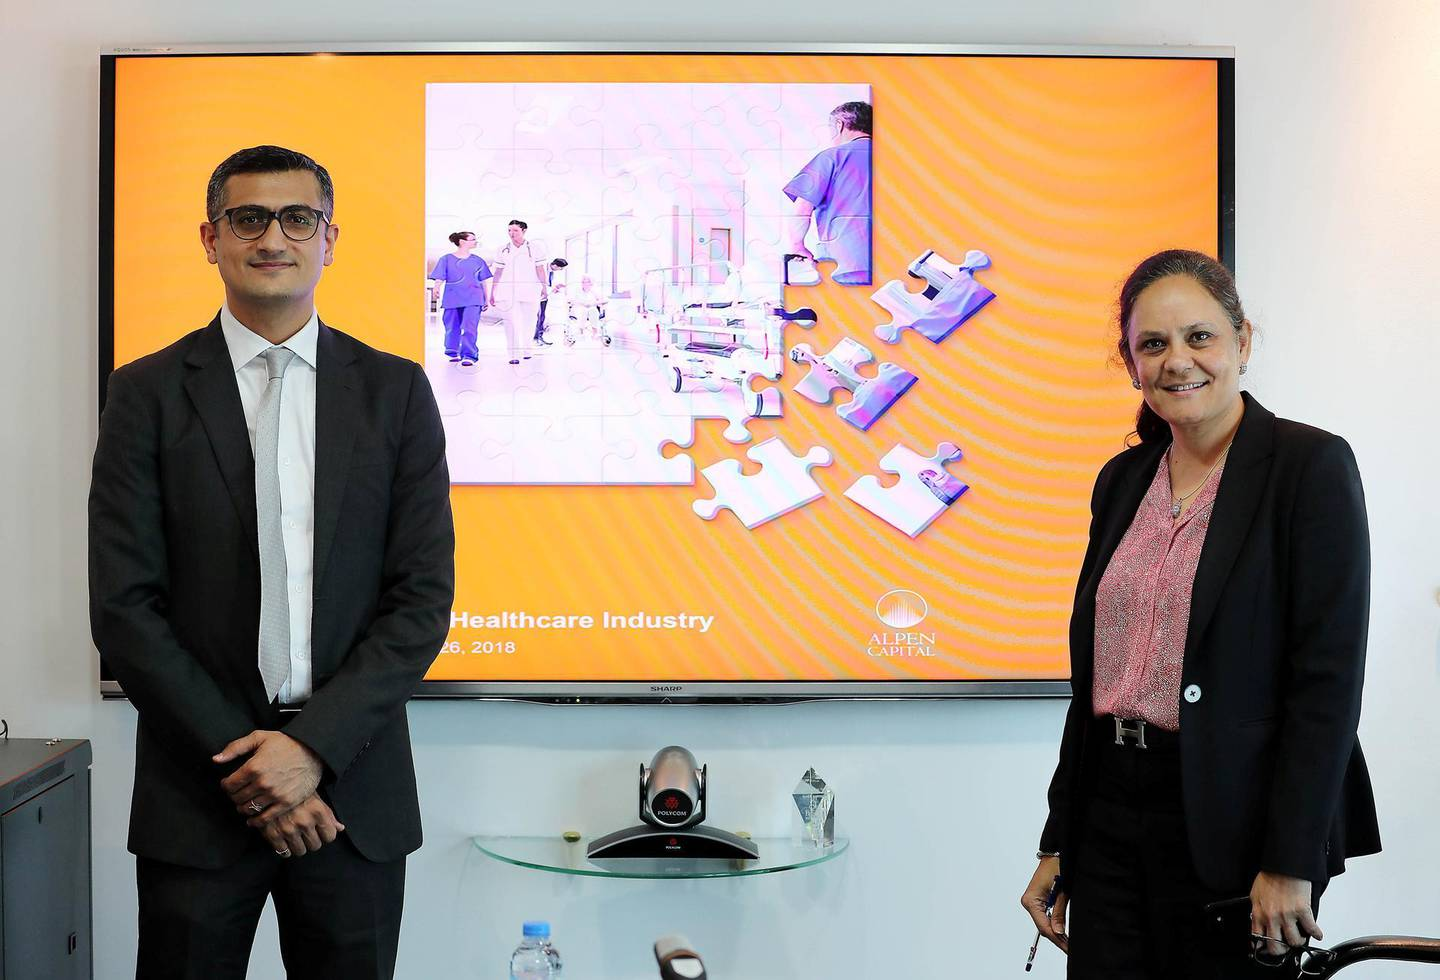 DUBAI , UNITED ARAB EMIRATES , MARCH 26  – 2018 :- Left to Right -  Krishna Dhanak , Executive Director , Alpen Capital (ME Ltd) and Sameena Ahmad , Managing Director , Alpen Capital (ME Ltd)  during the roundtable press conference about Healthcare Industry held at Alpen Capital office in DIFC in Dubai. ( Pawan Singh / The National ) For News. Story by Nick